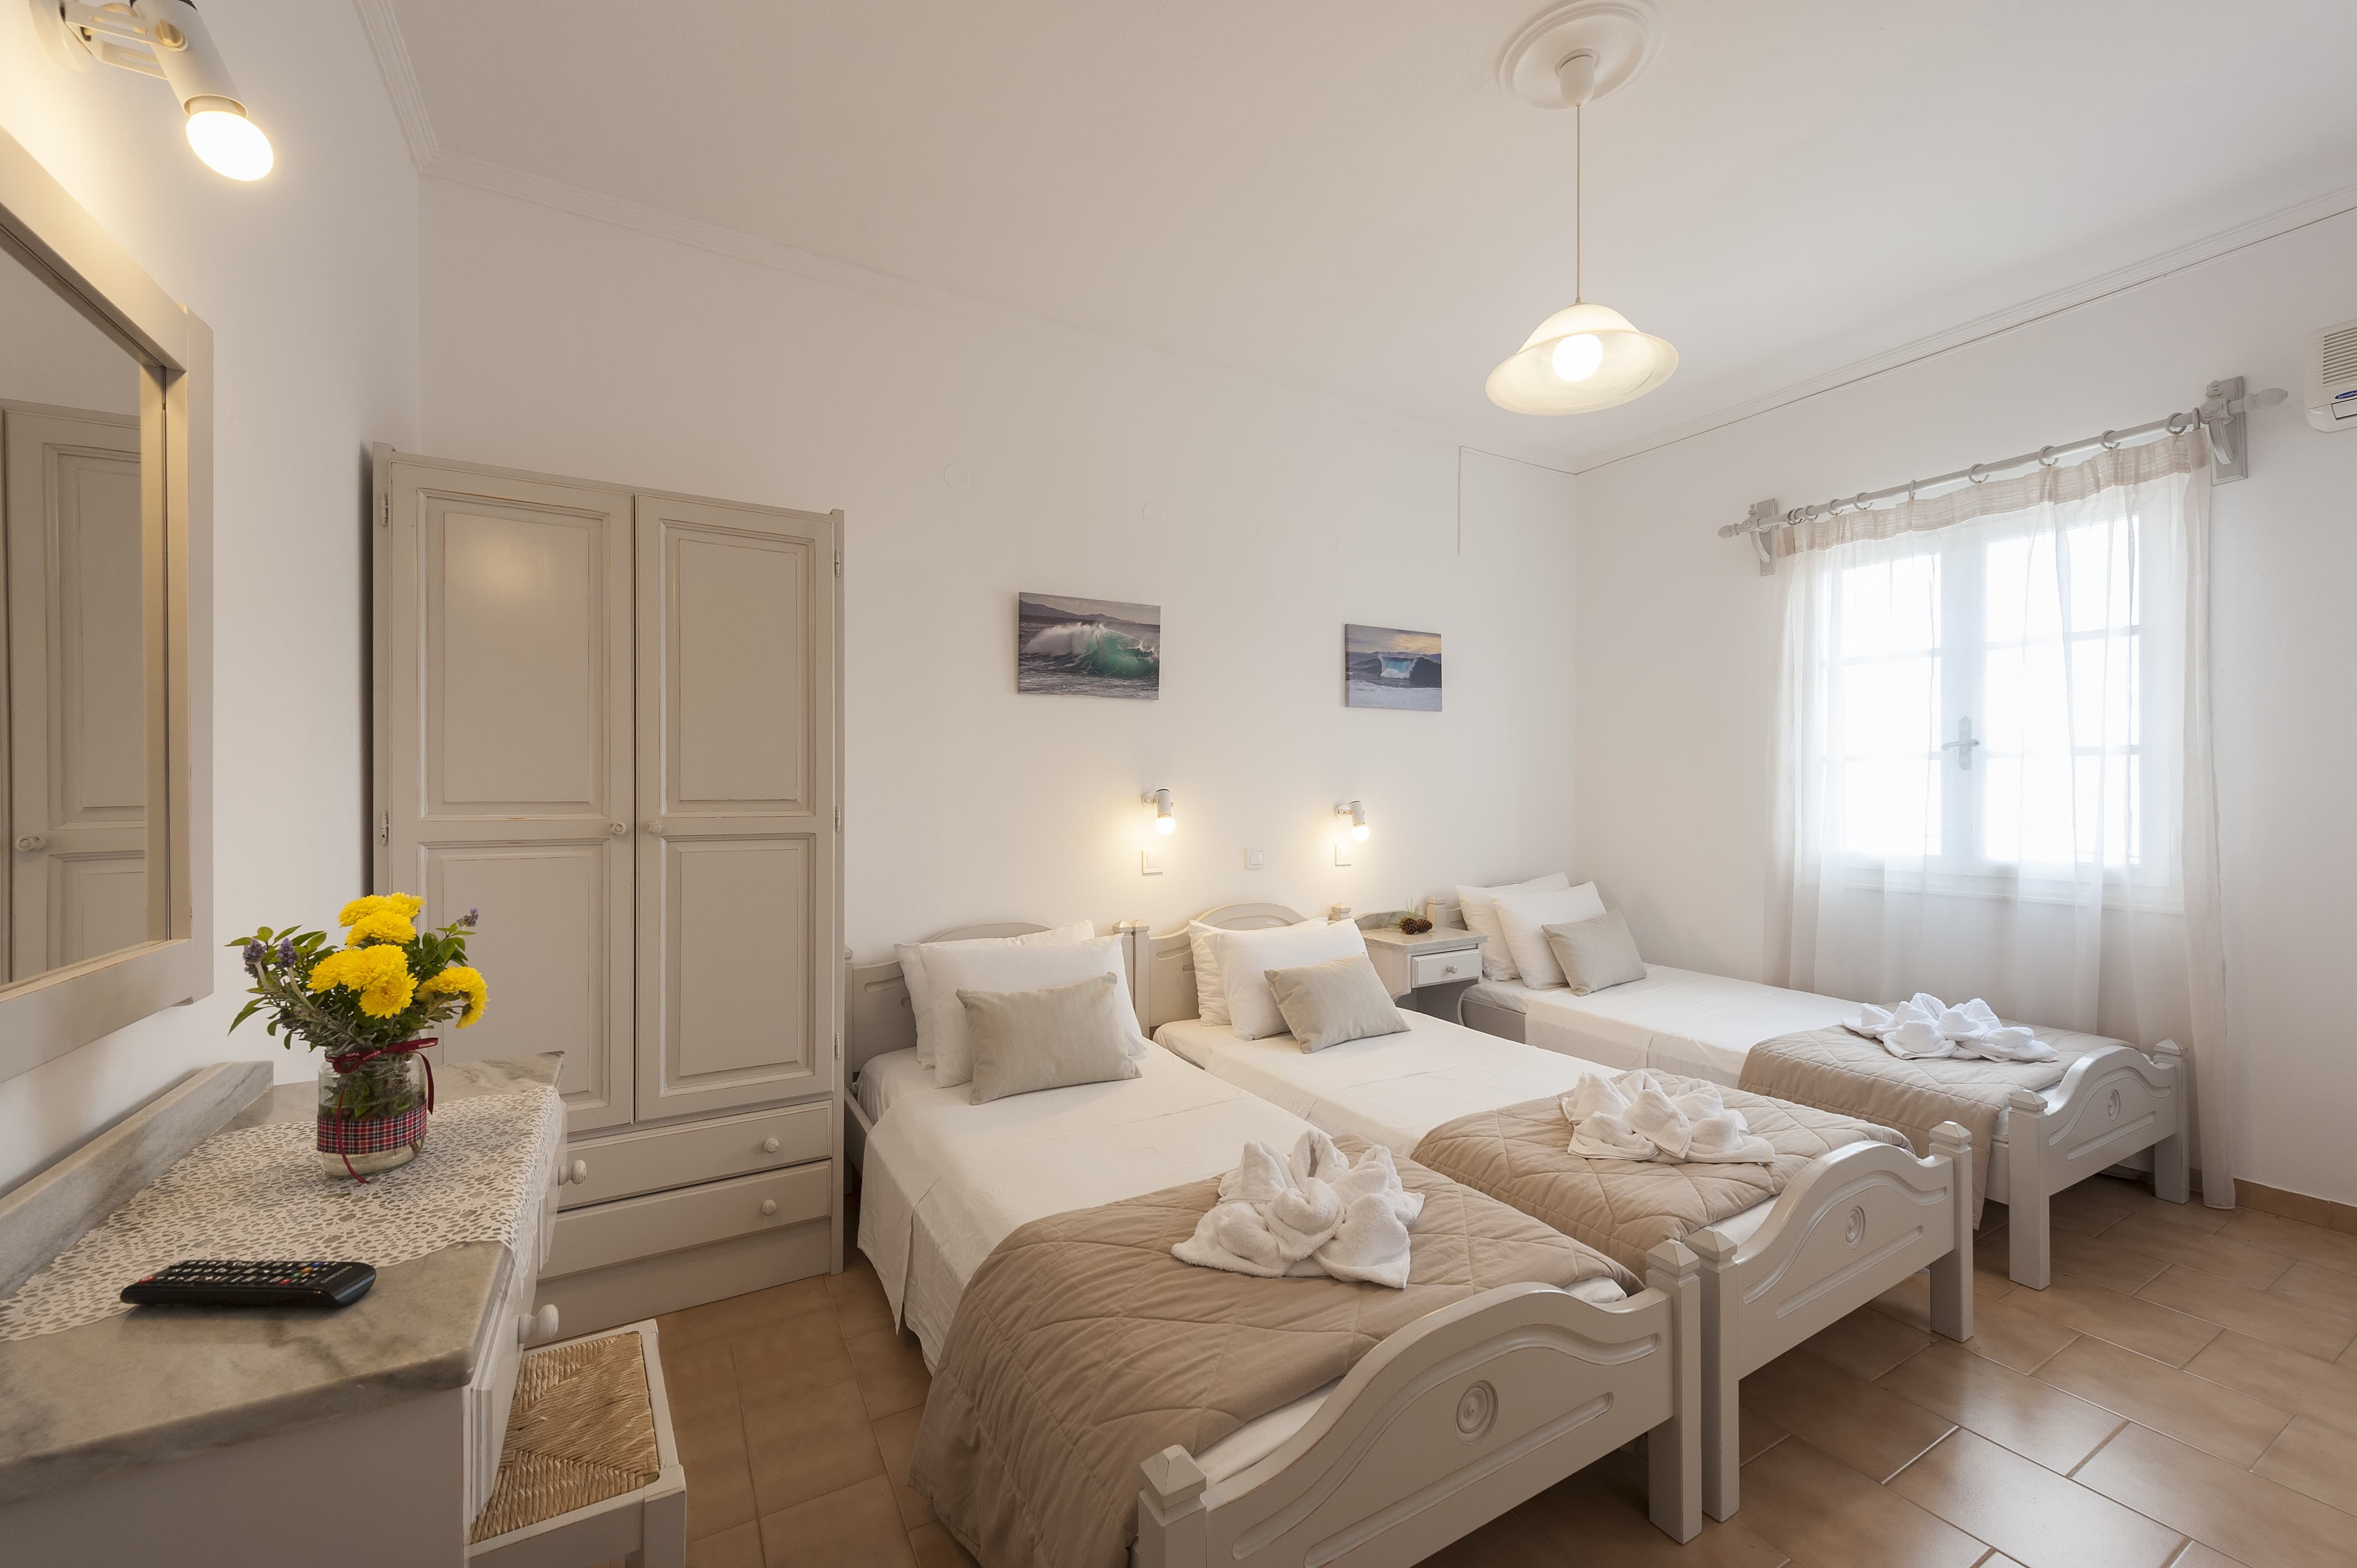 Two Bedroom with seaview bedroom 2